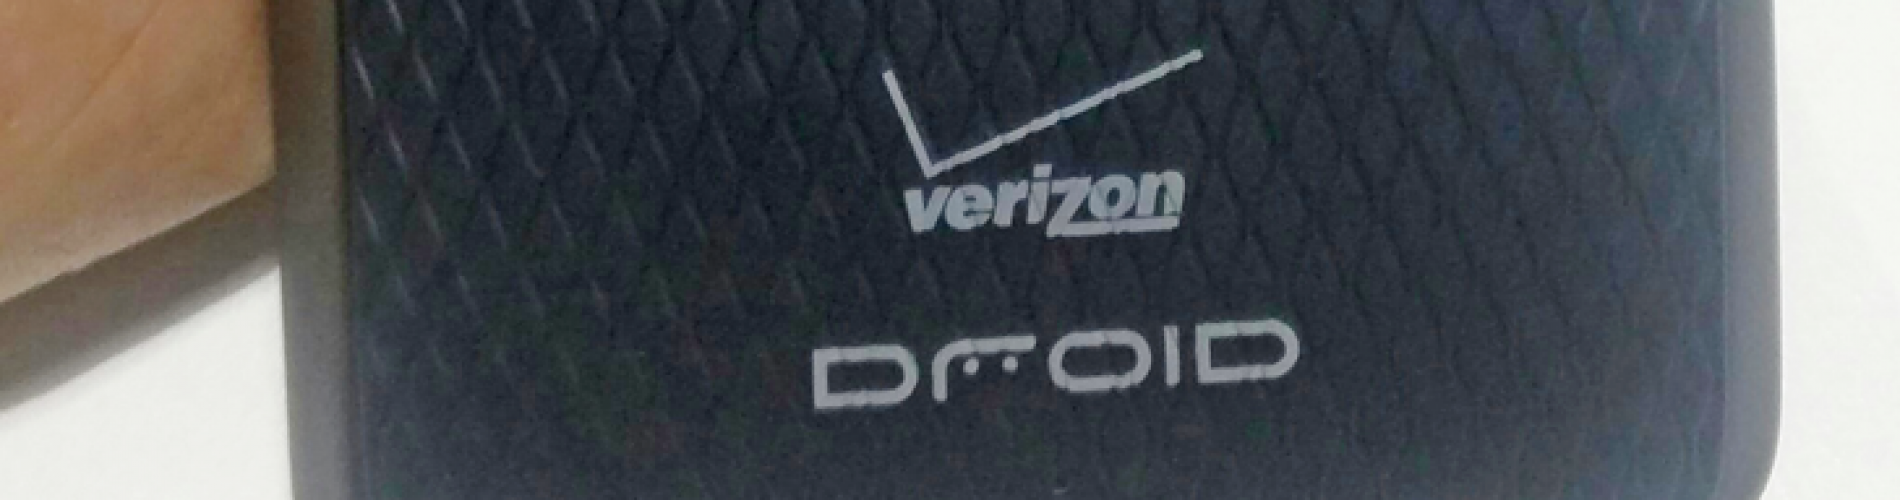 Droid MAXX 2 pictures and specs suggest Verizon-branded take on Moto X Play